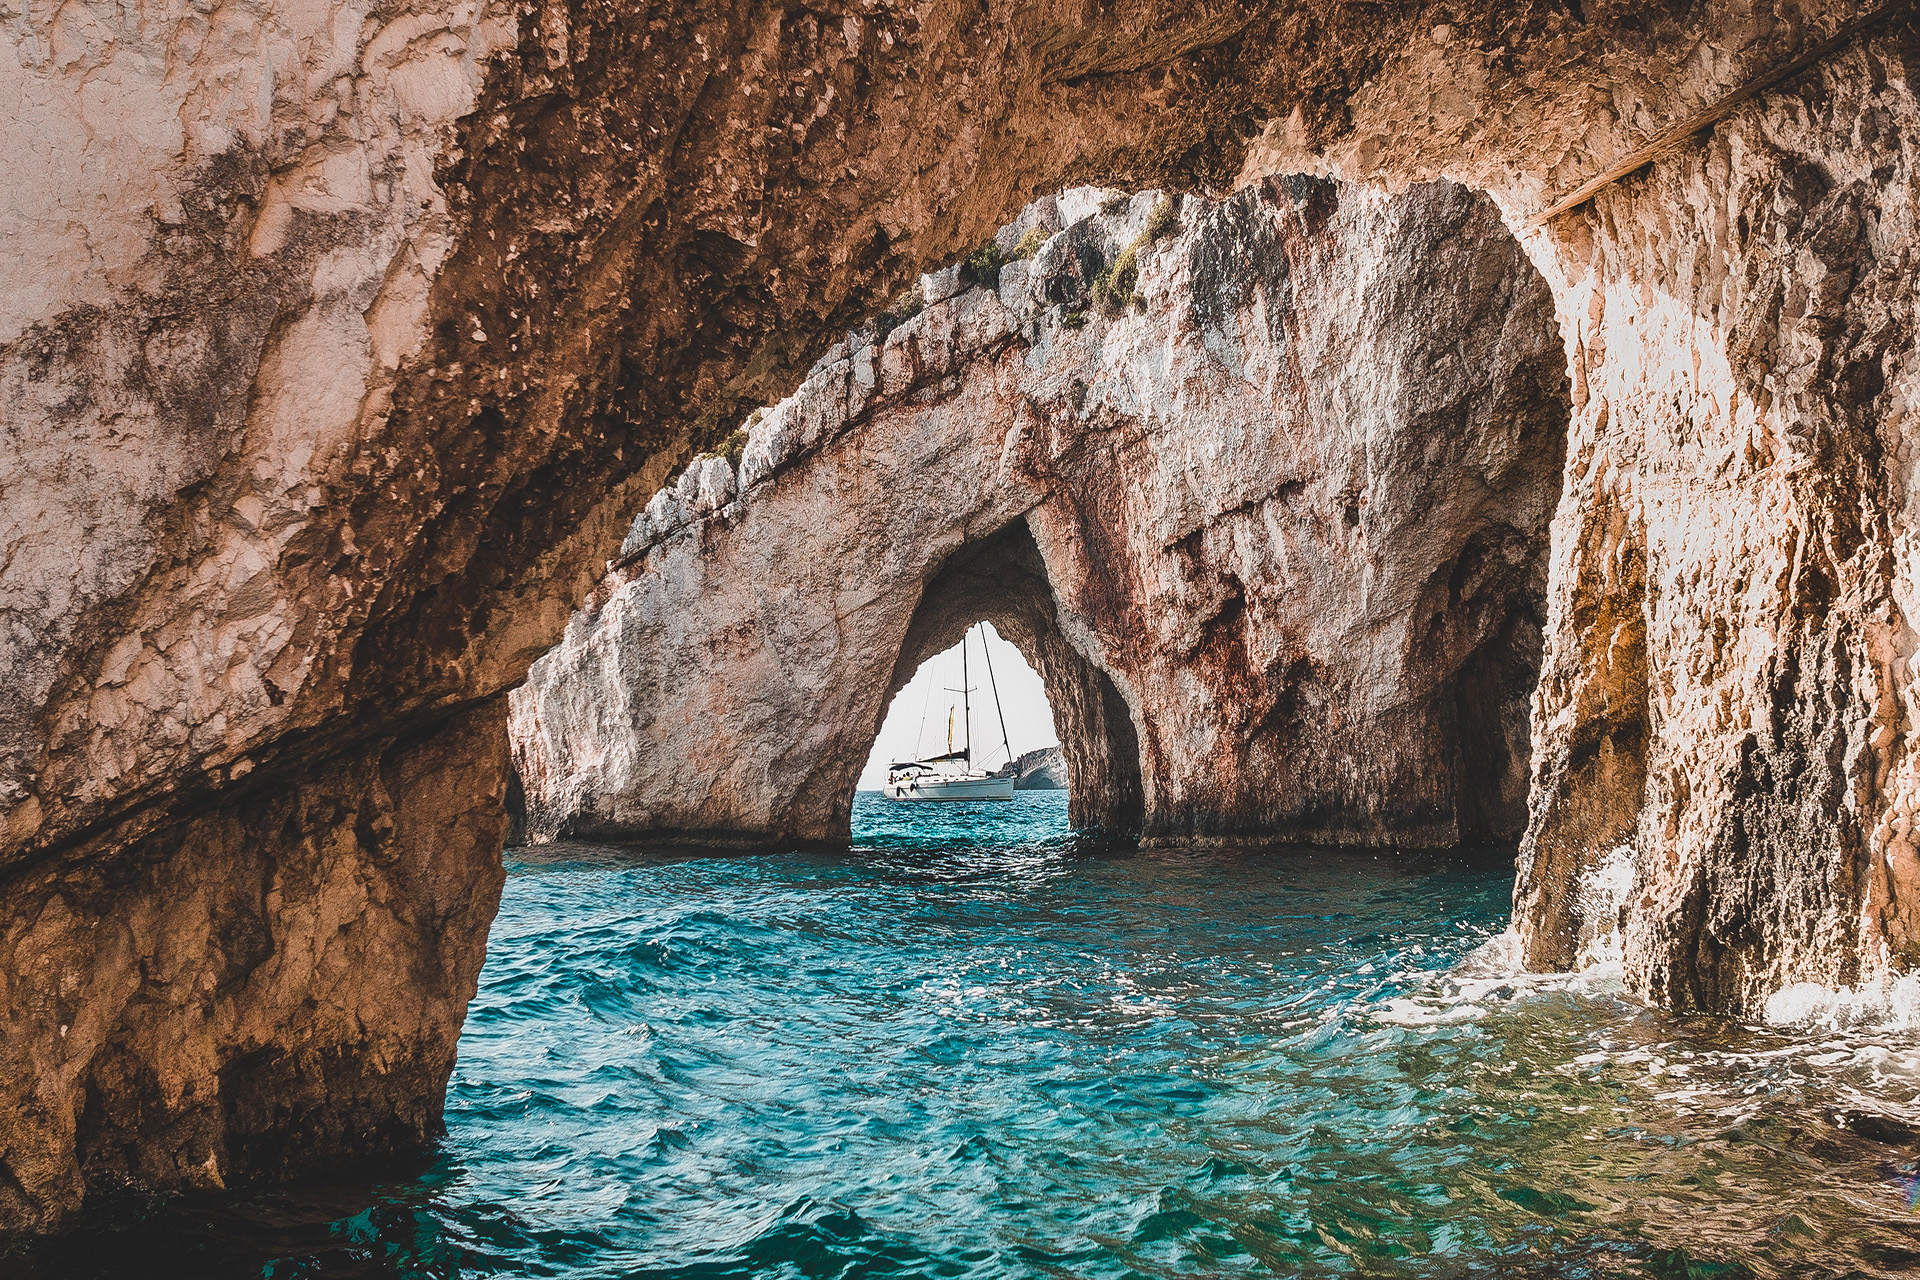 Ocean with stone archways